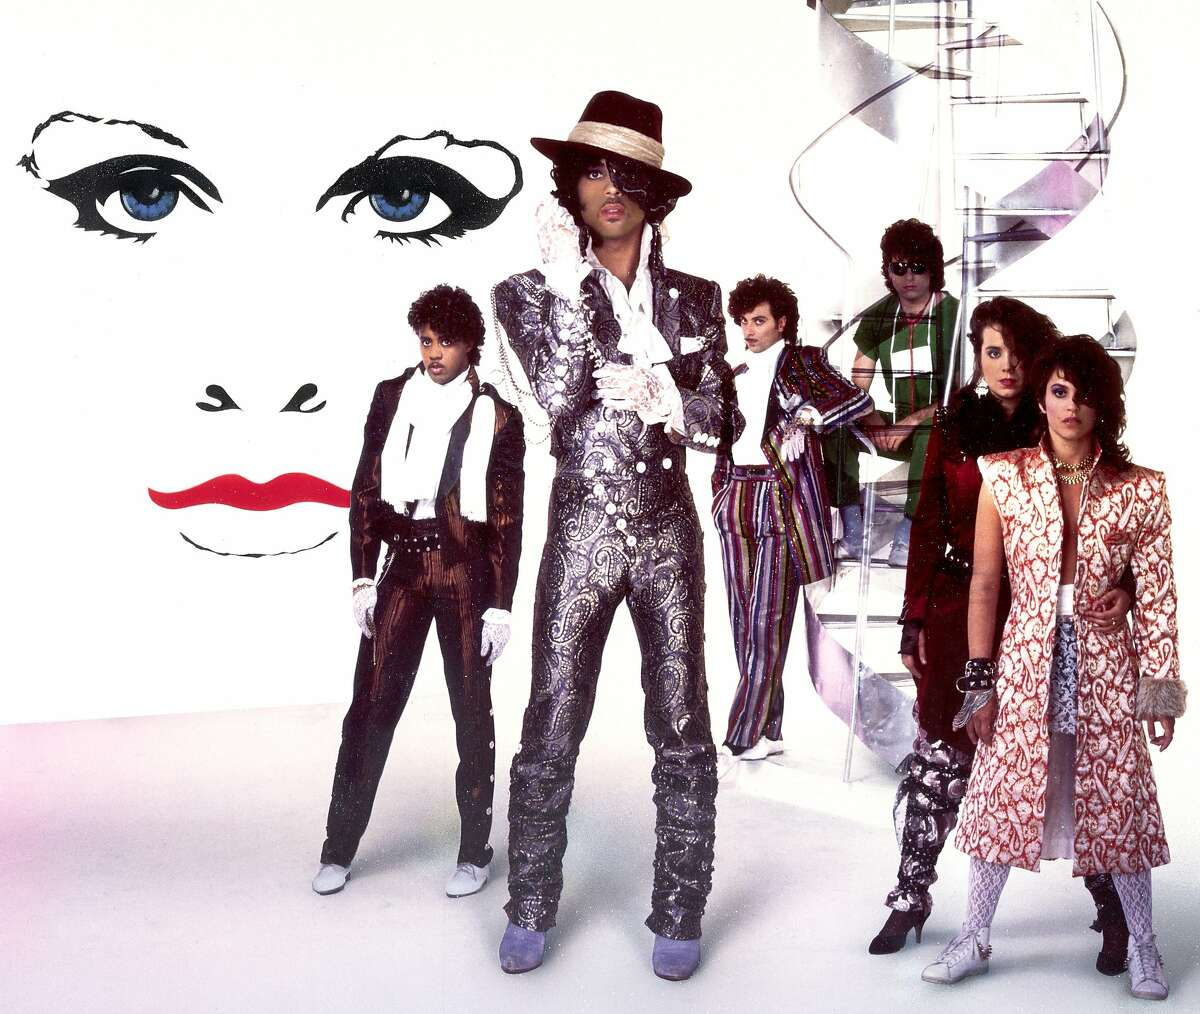 Band photo of Prince and The Revolution during their '80s heyday